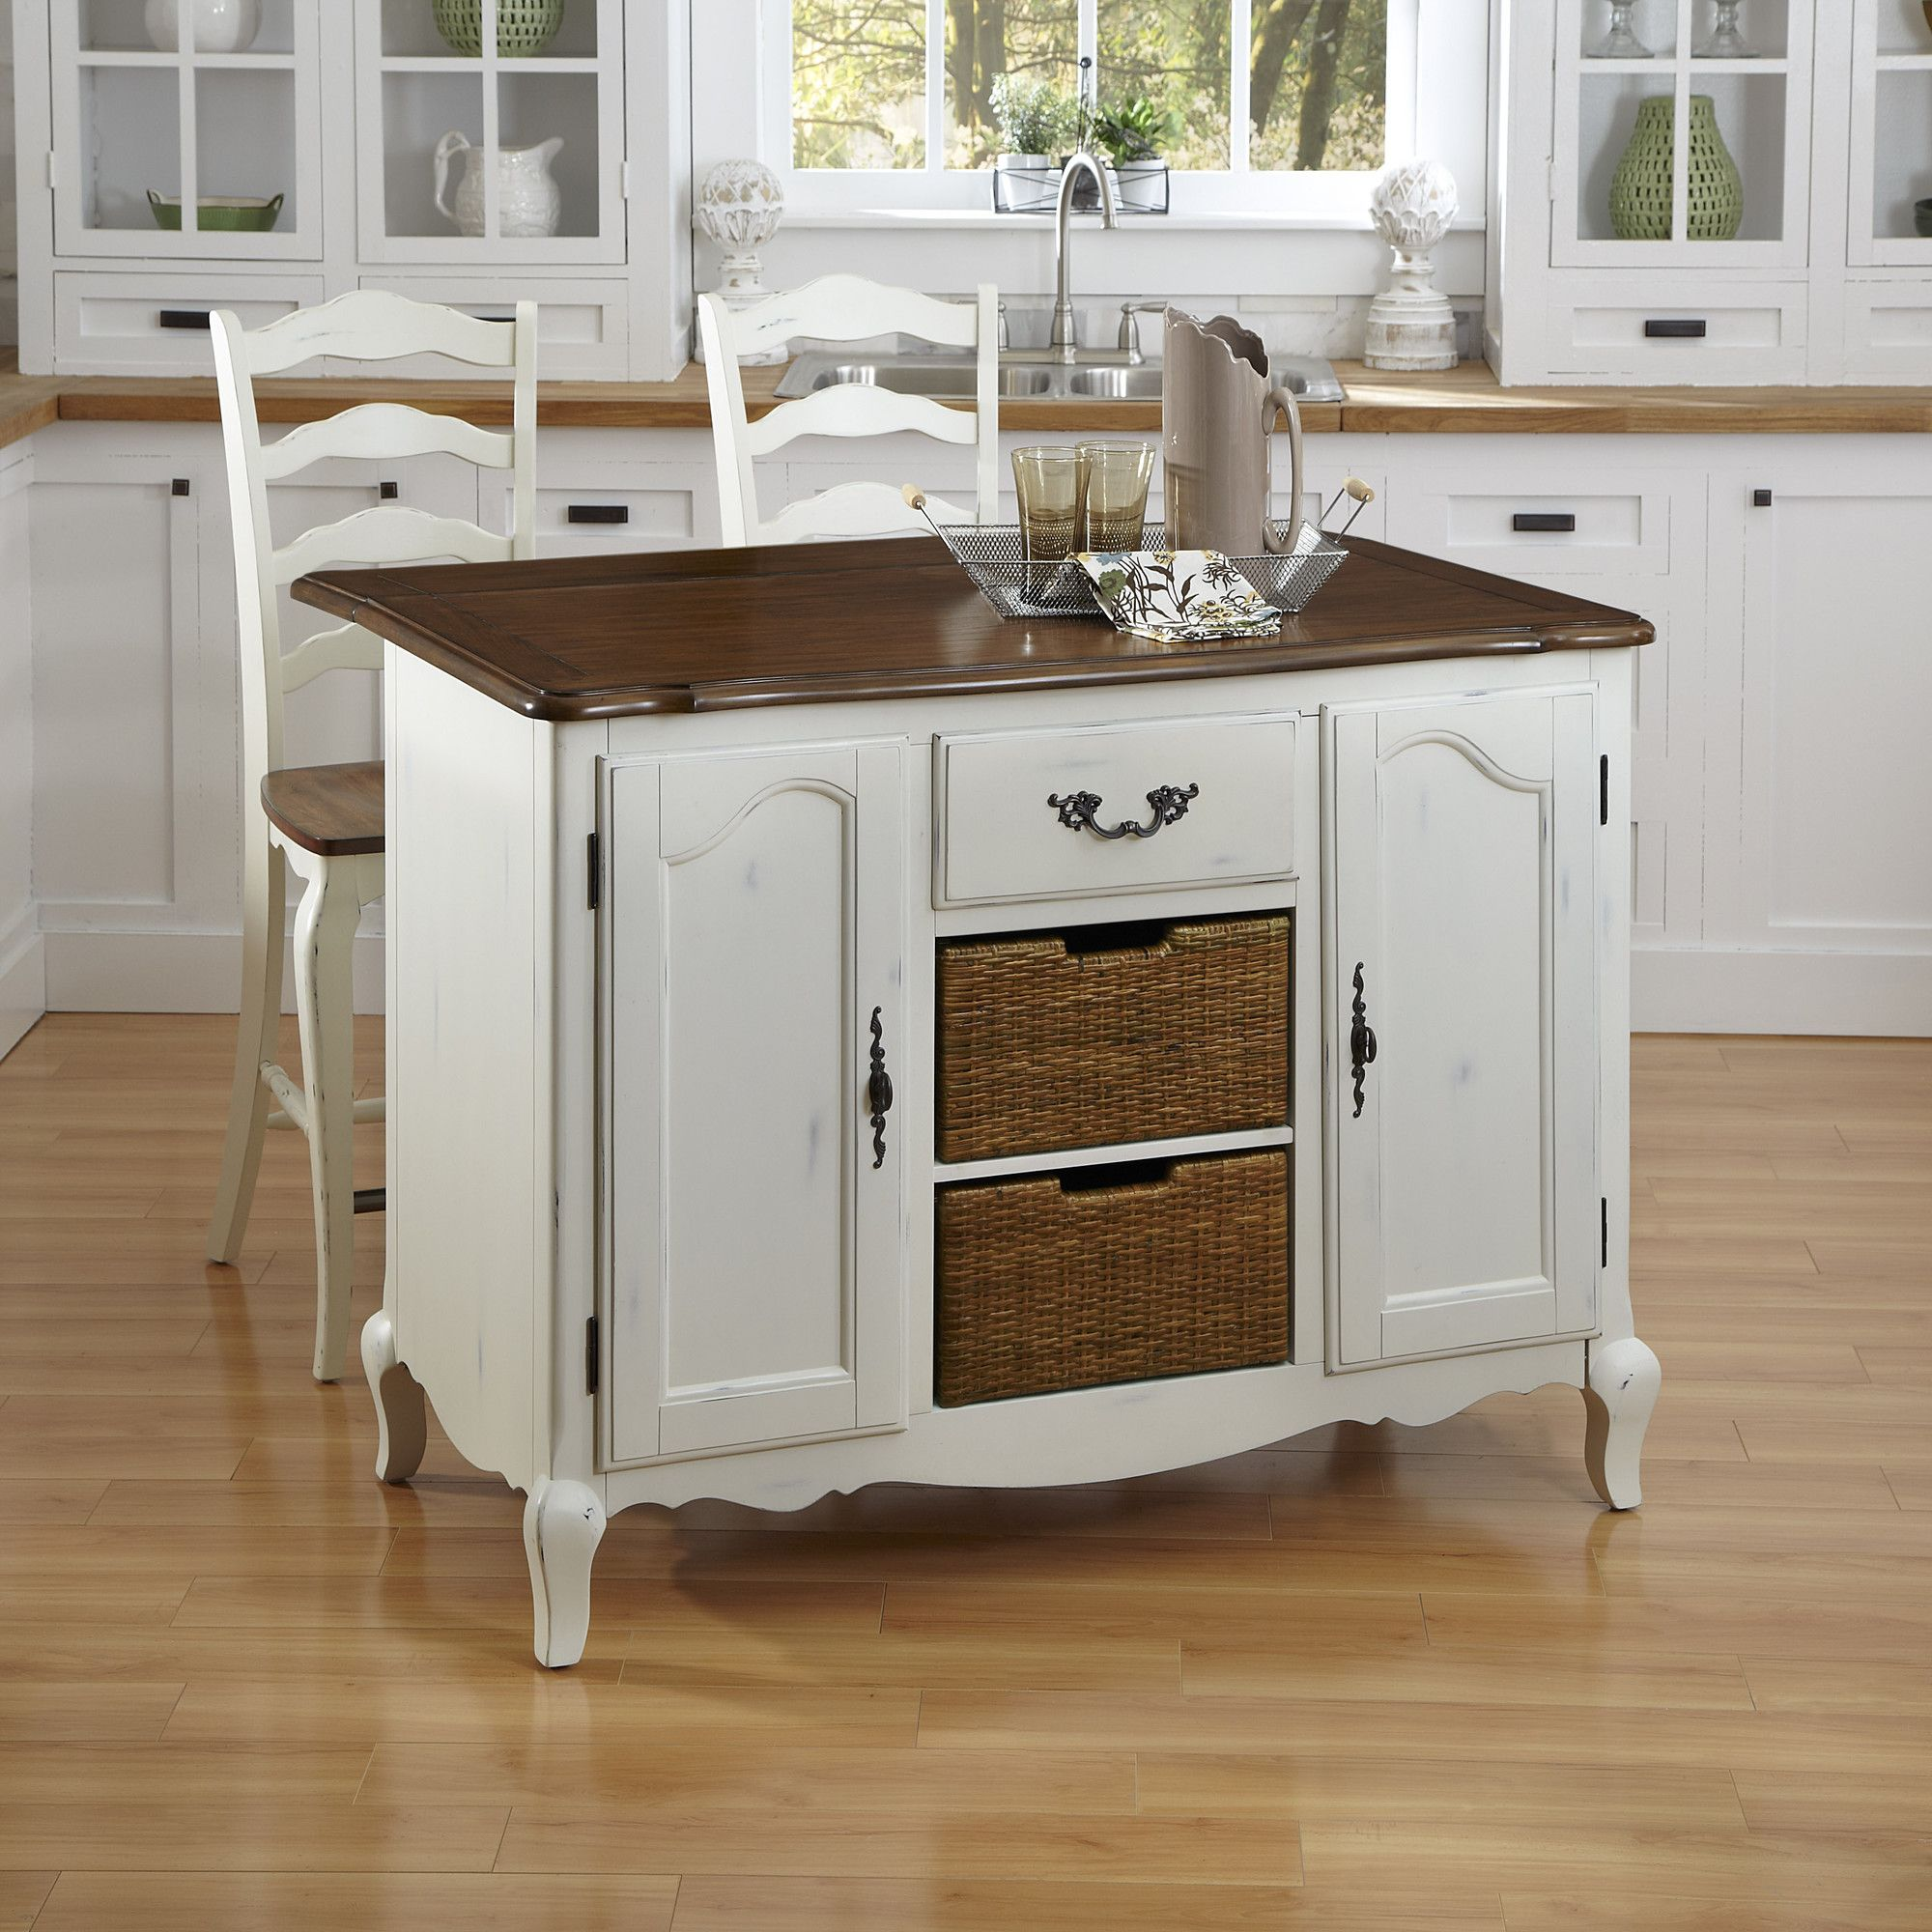 French Countryside Kitchen Island | Wayfair | Browse By Room ...